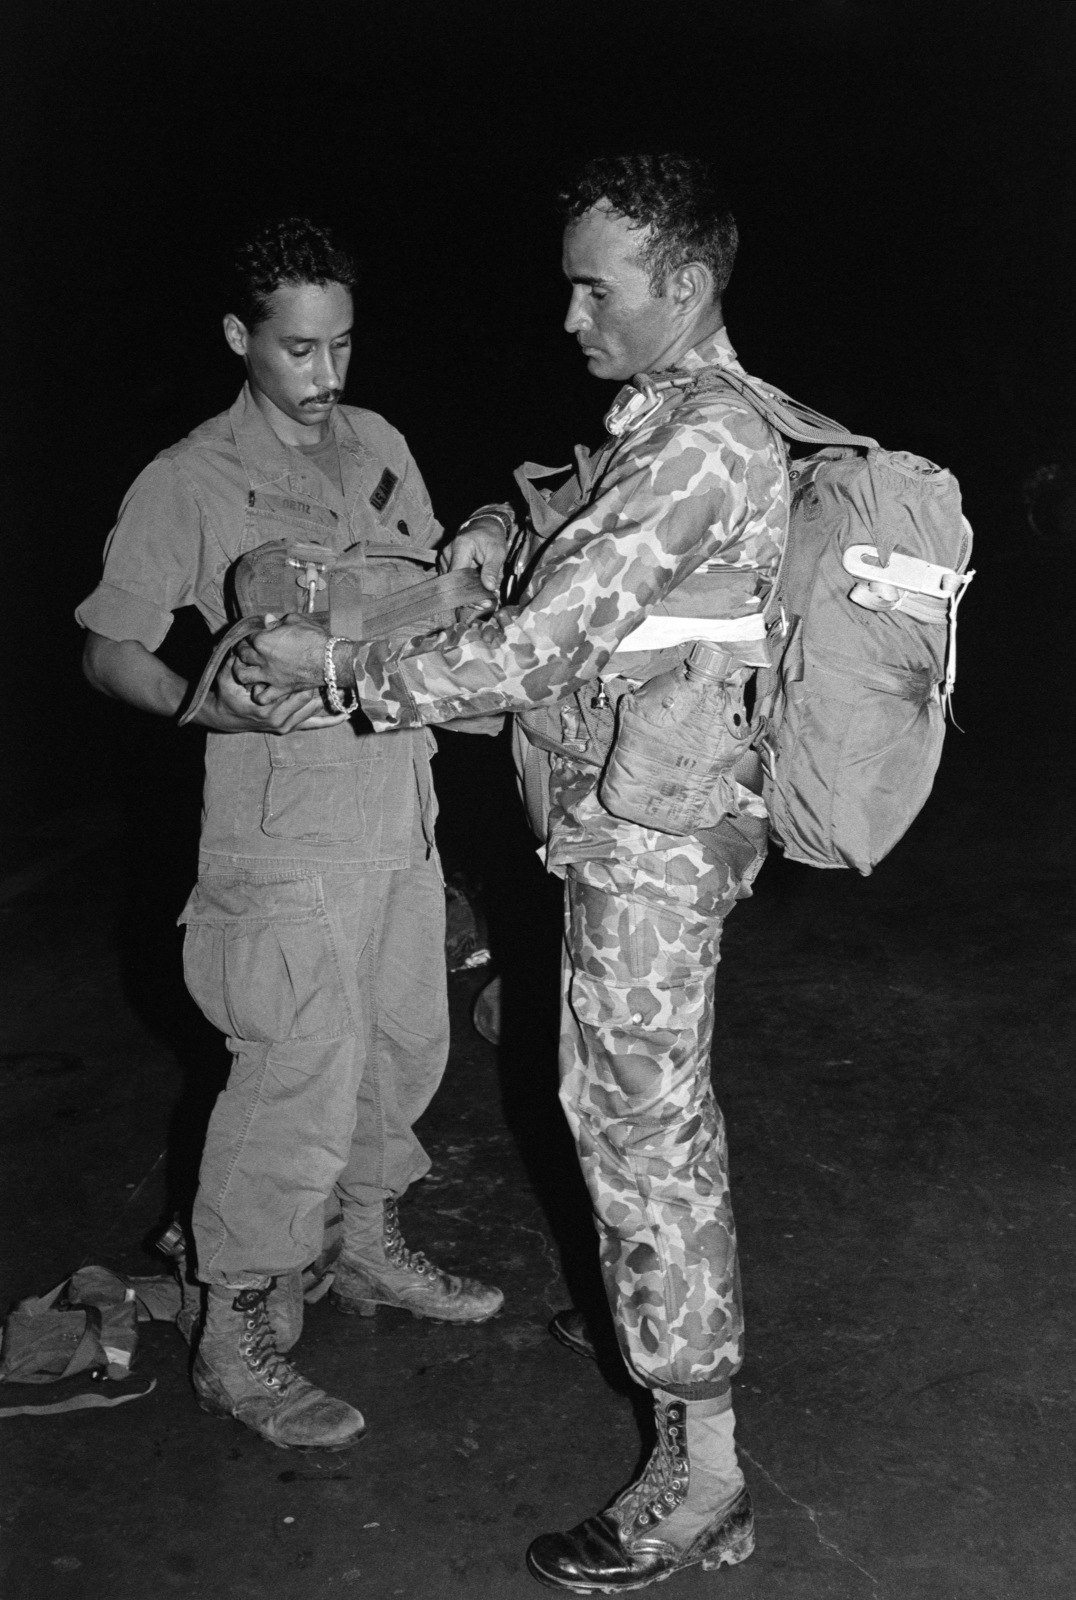 A member of Company A, 3rd Battalion, 5th Infantry, US Army, inspects the spare parachute worn by a soldier of the Panama National Guard piror to an airborne assault during a joint US/Panamanian exercise